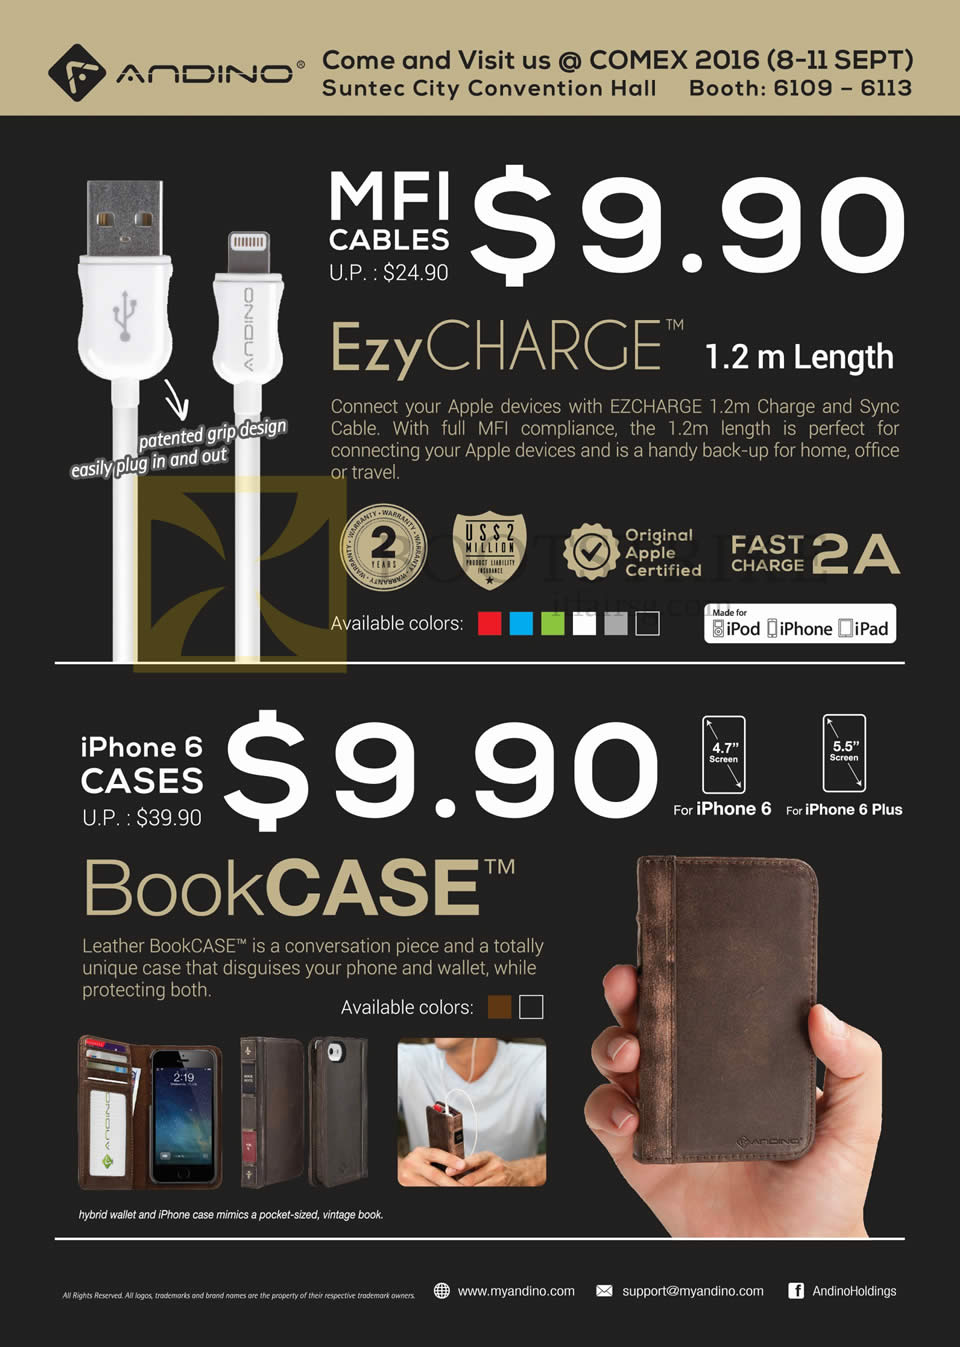 COMEX 2016 price list image brochure of Sprint-Cass Andino MFI Cables, IPhone 6 Cases, Ezy Charge, BookCase